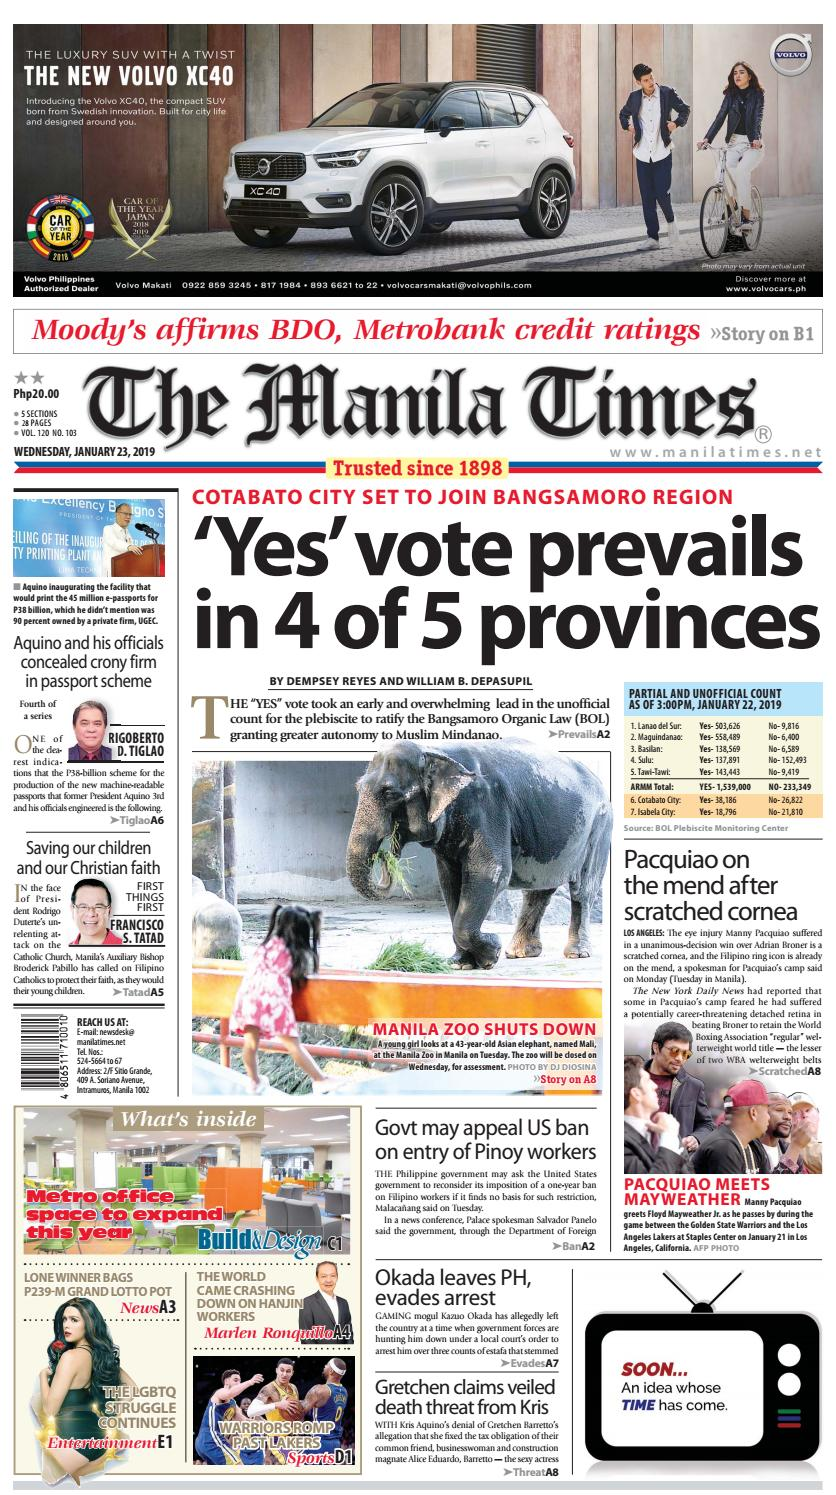 THE MANILA TIMES | JANUARY 23, 2019 by The Manila Times - issuu